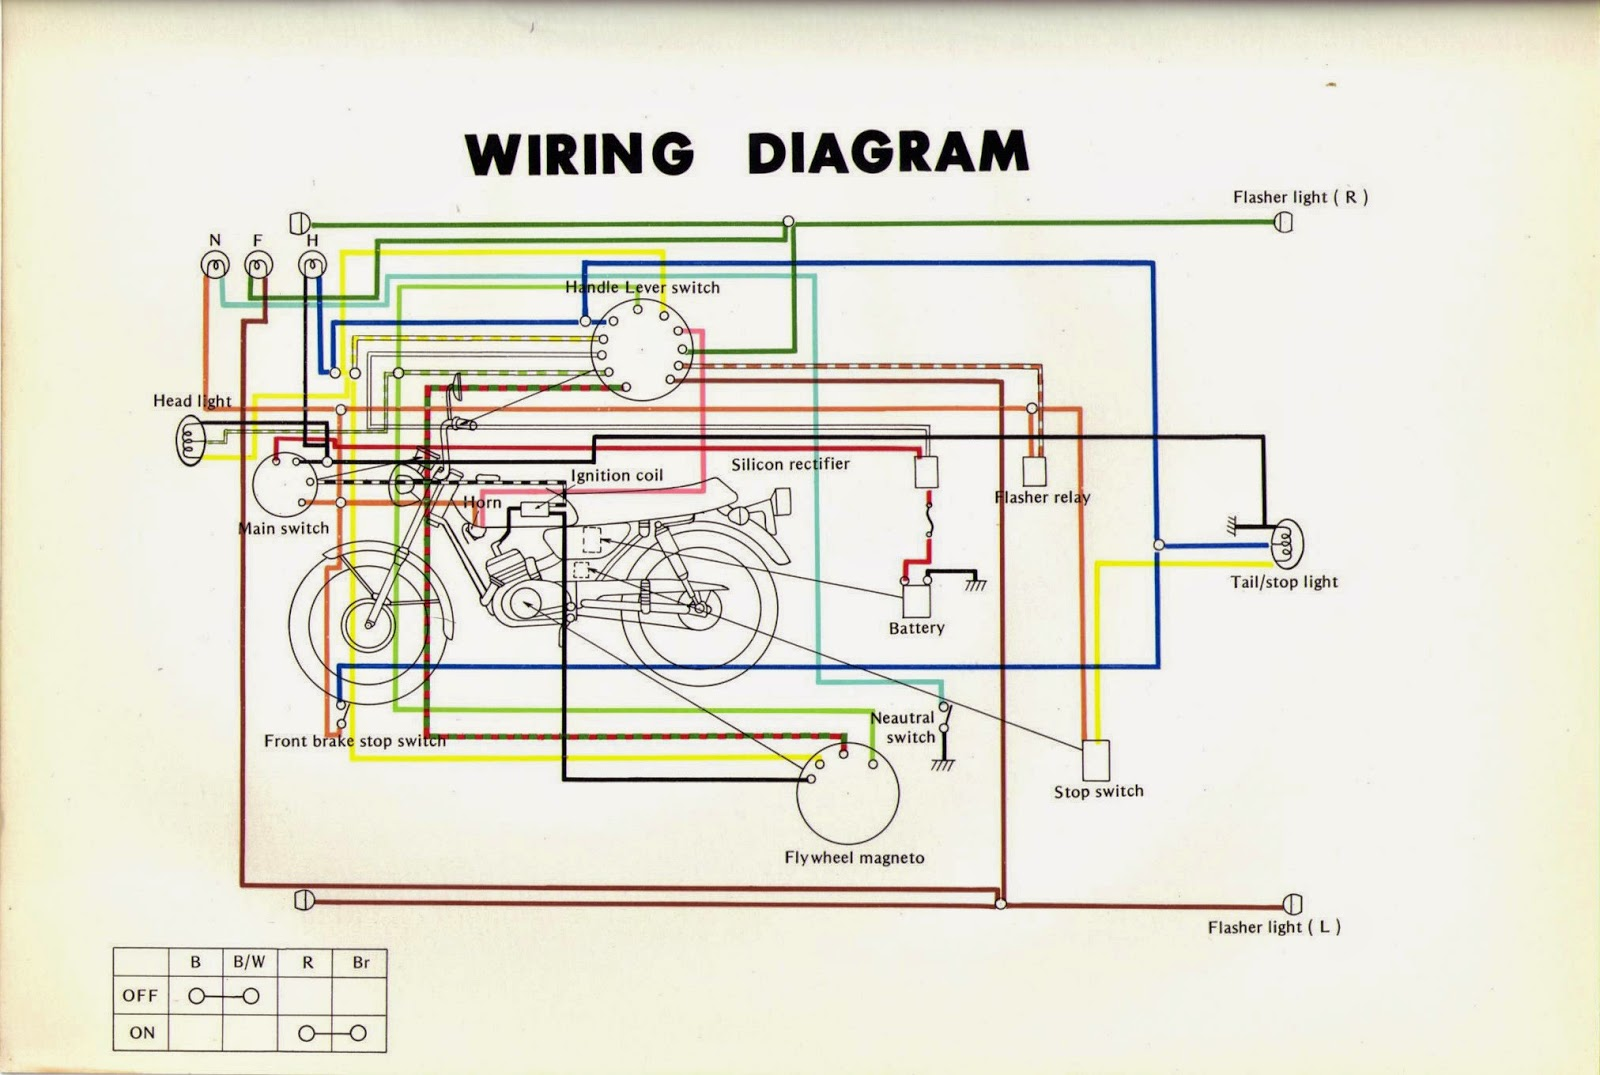 1976 Chevy Vega Wiring Diagram Electrical Diagrams For Monza Fuel Pump 1972 Automotive Schematic Trusted Symbols Source